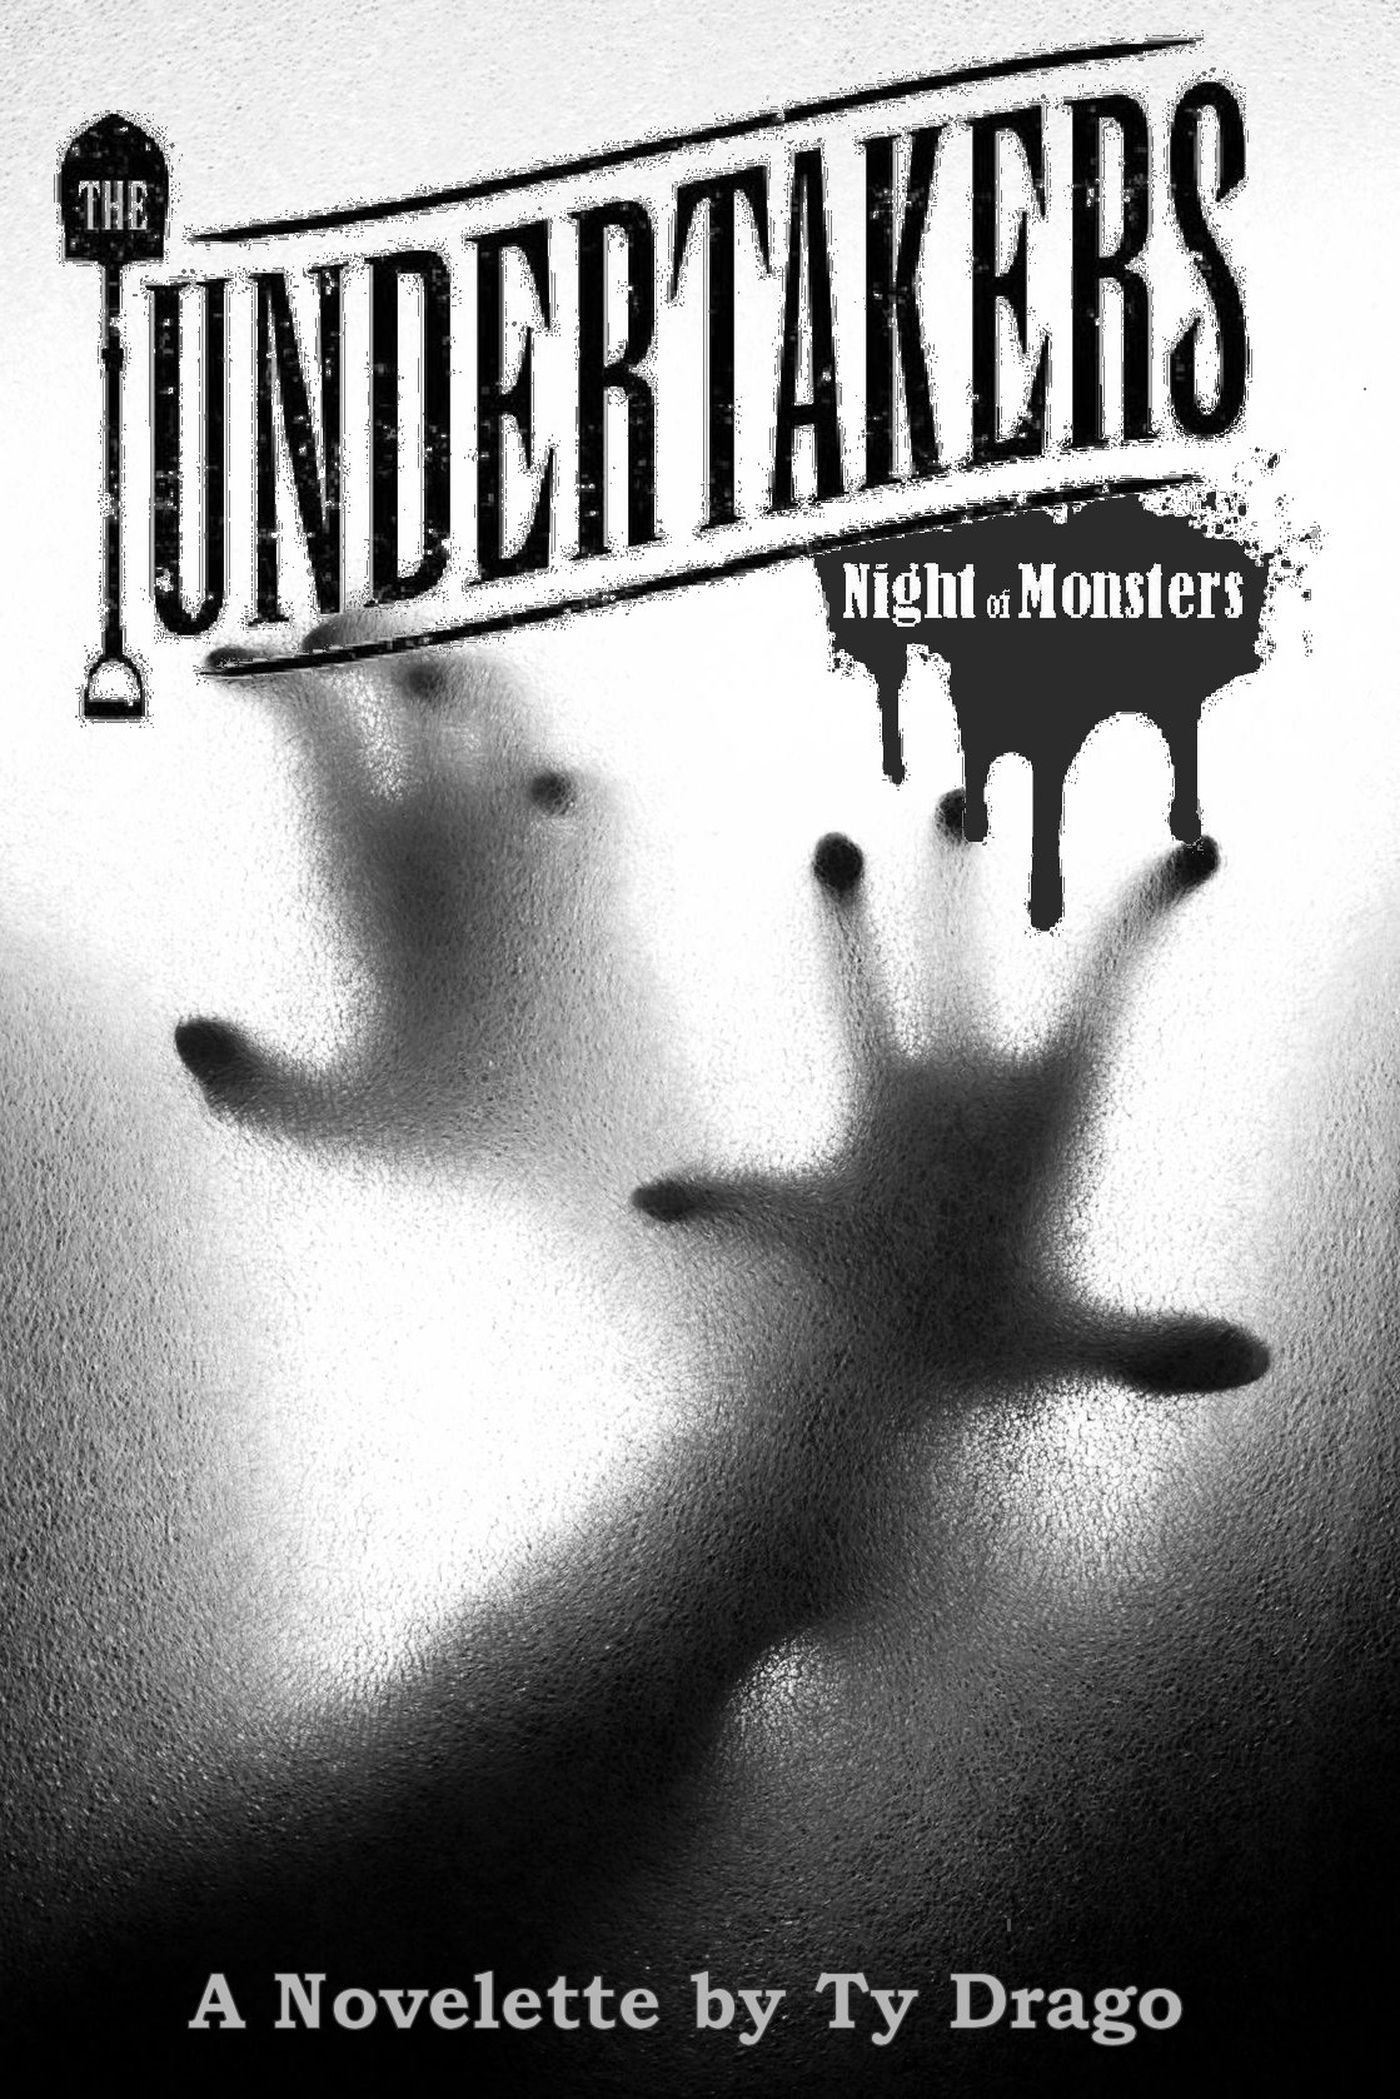 The Undertakers: Night of Monsters (Part 1)